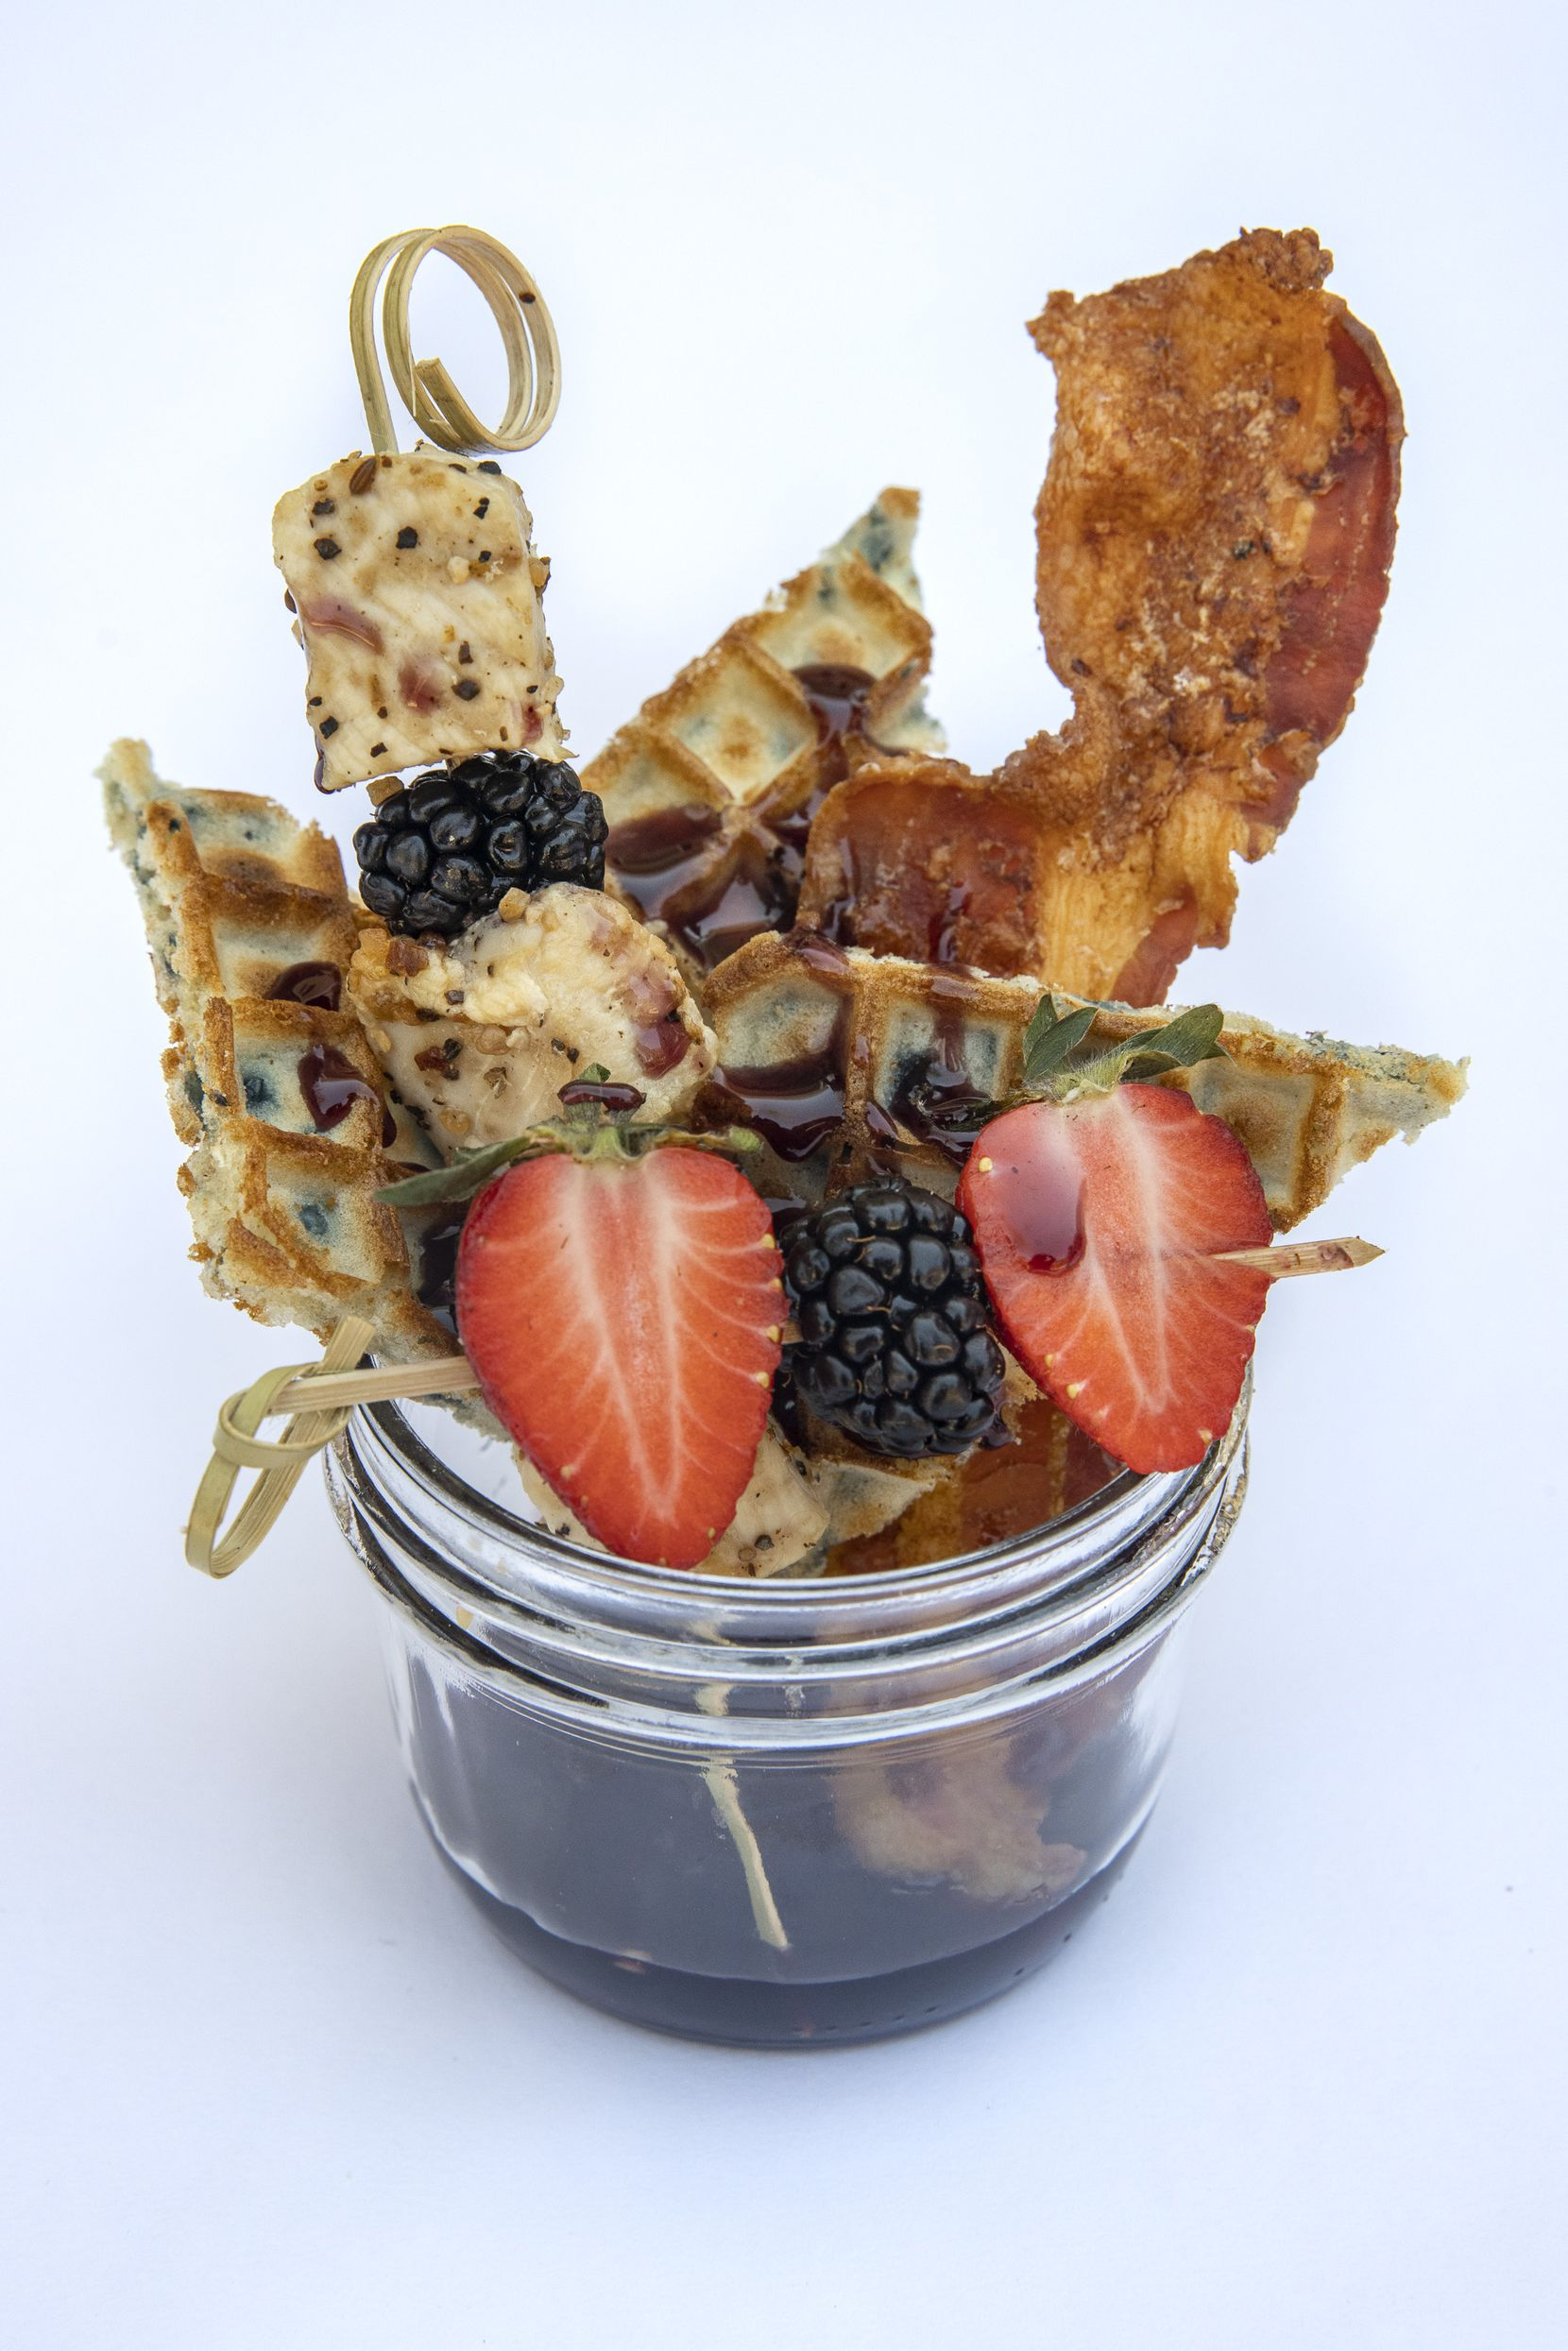 The Blackberry Chicken and Waffles jar